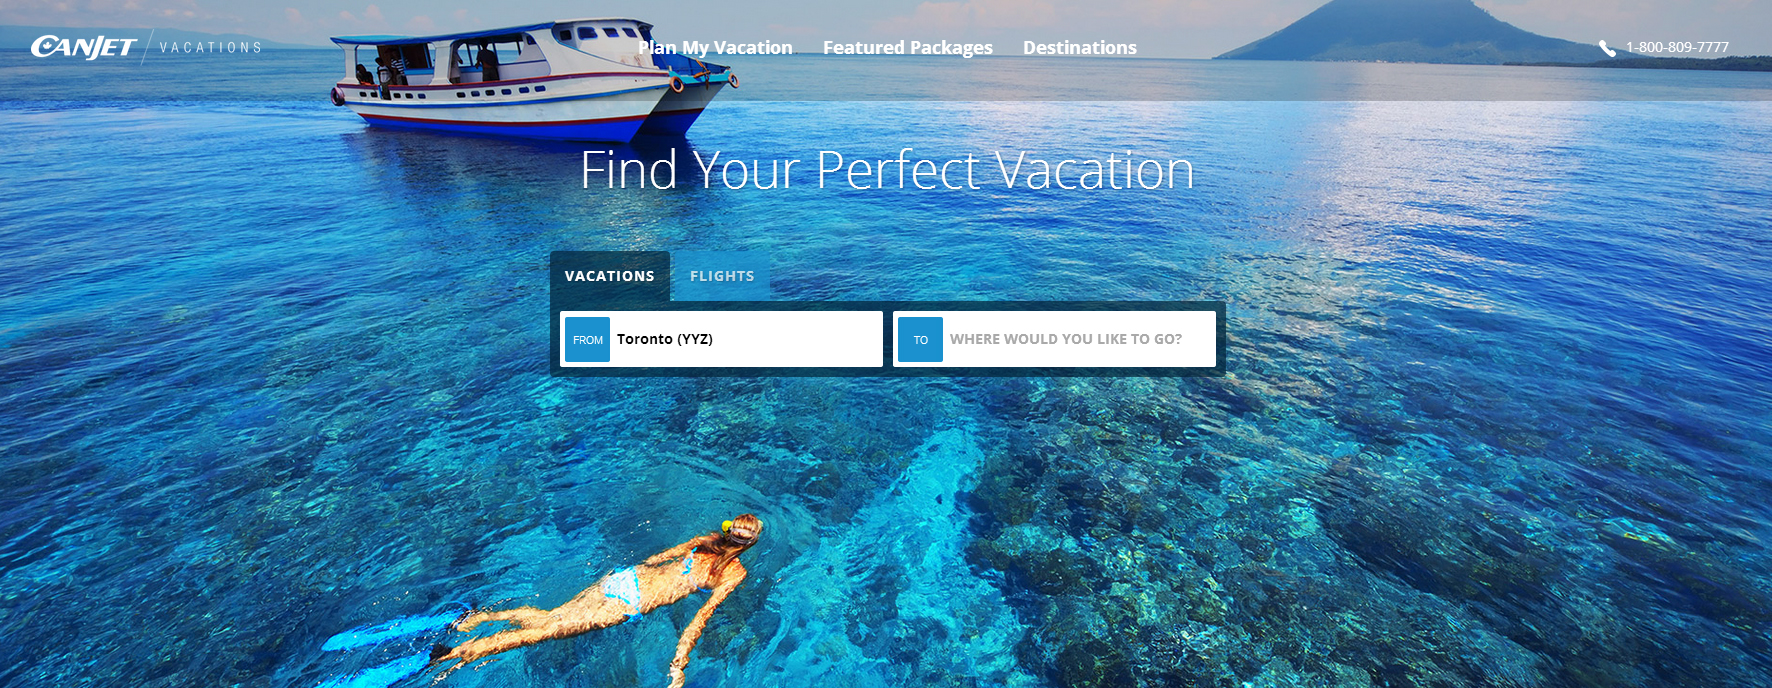 CanJet Vacations officially launches